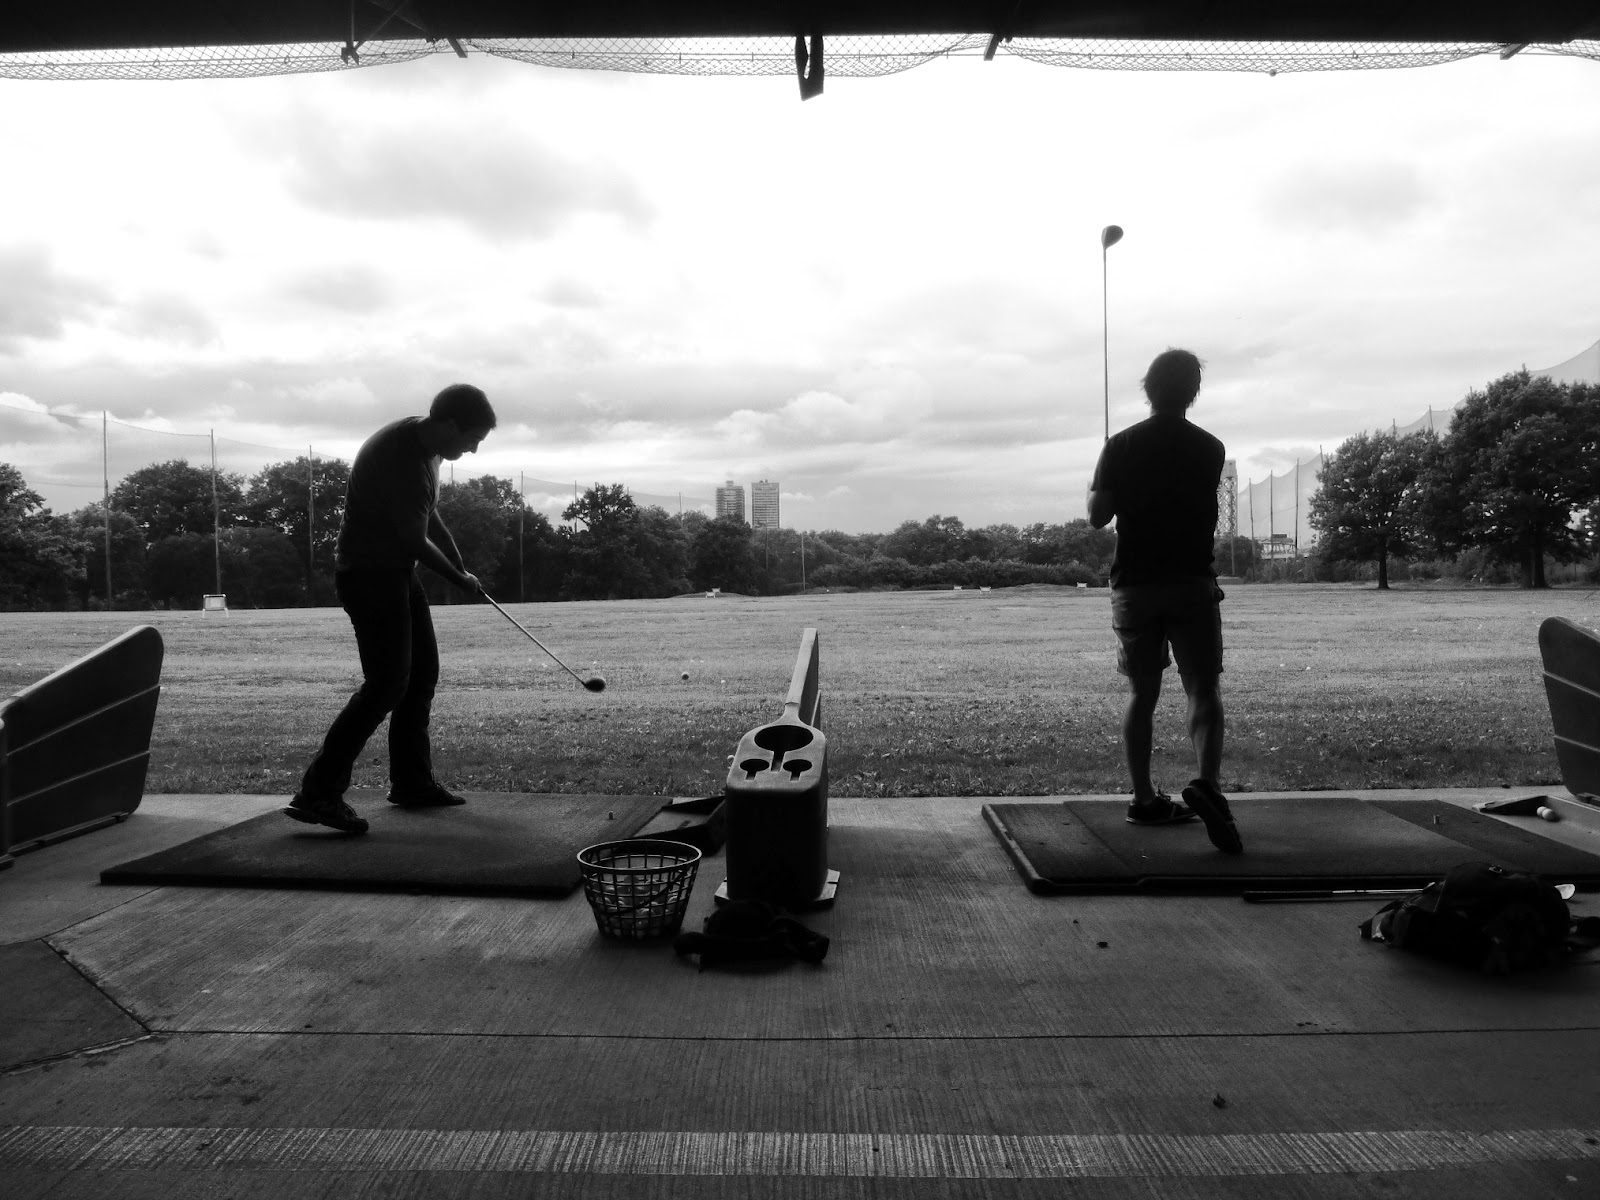 Driving Range at Randall's Island Golf Center